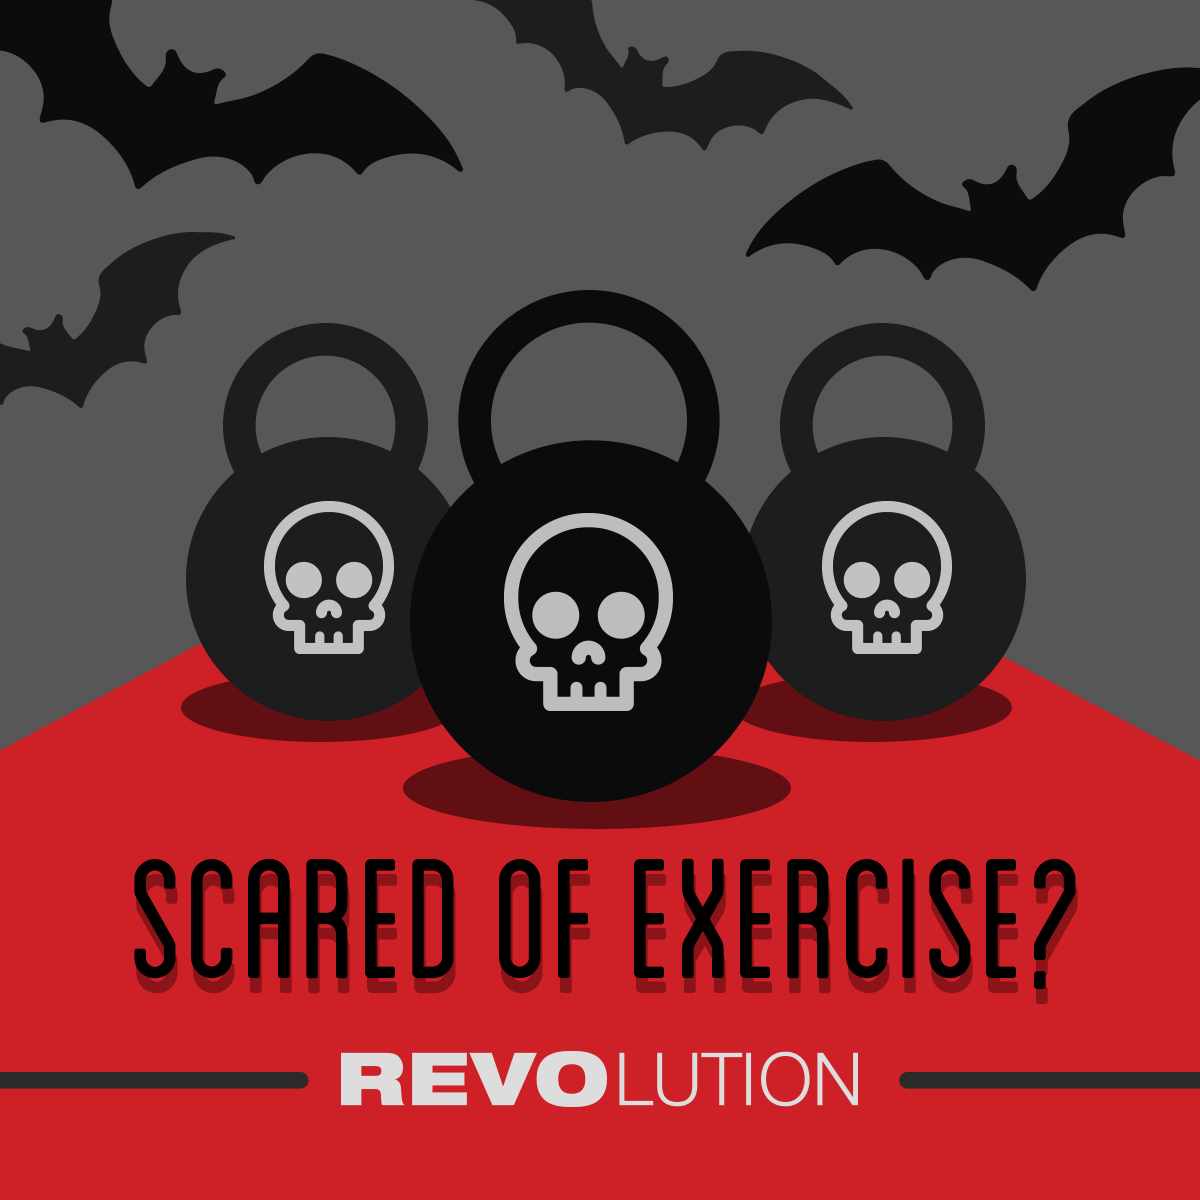 Scared of exercise?